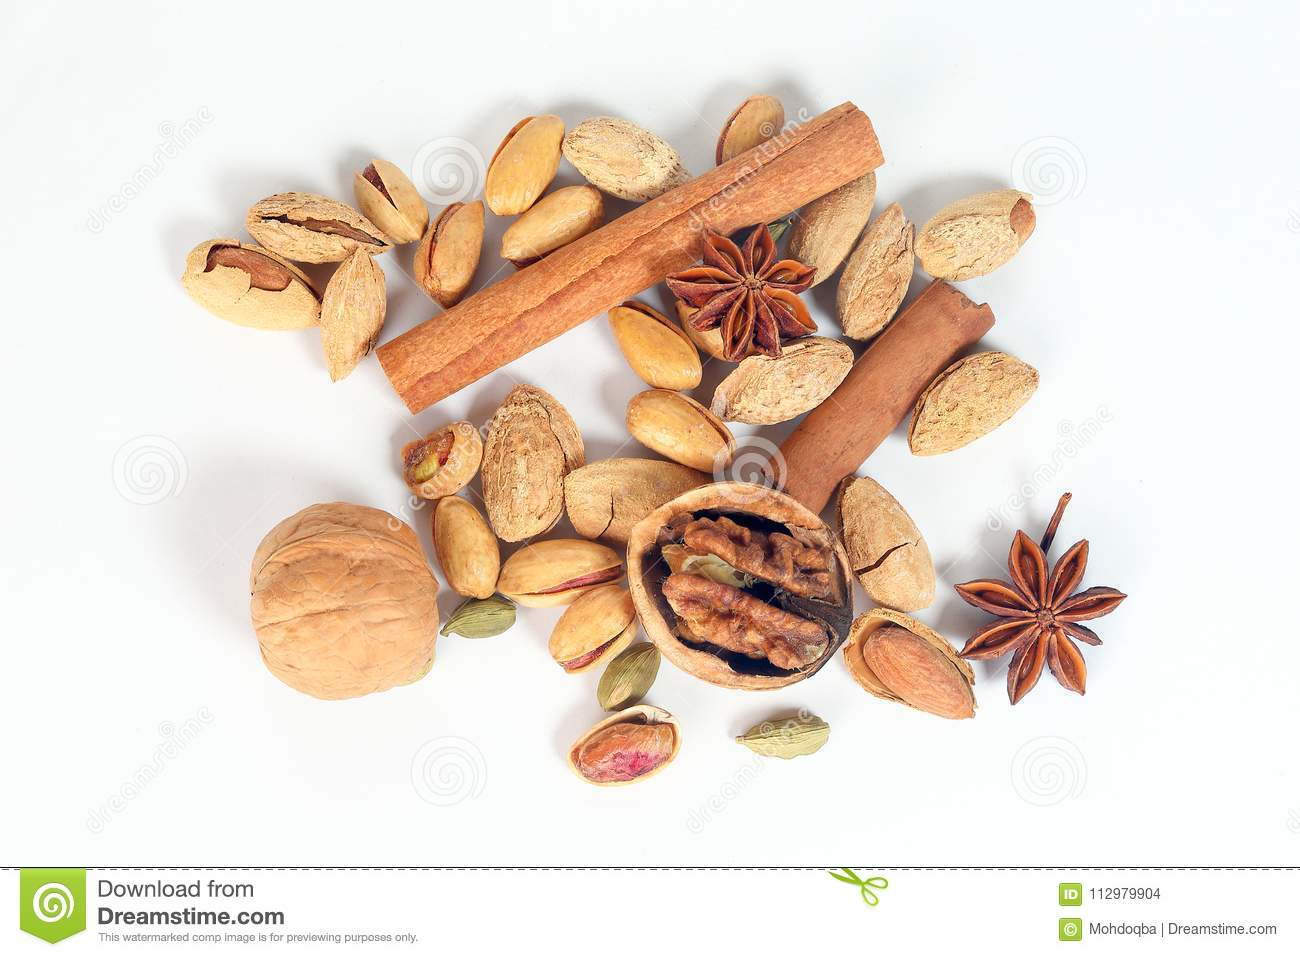 Nuts spice mix